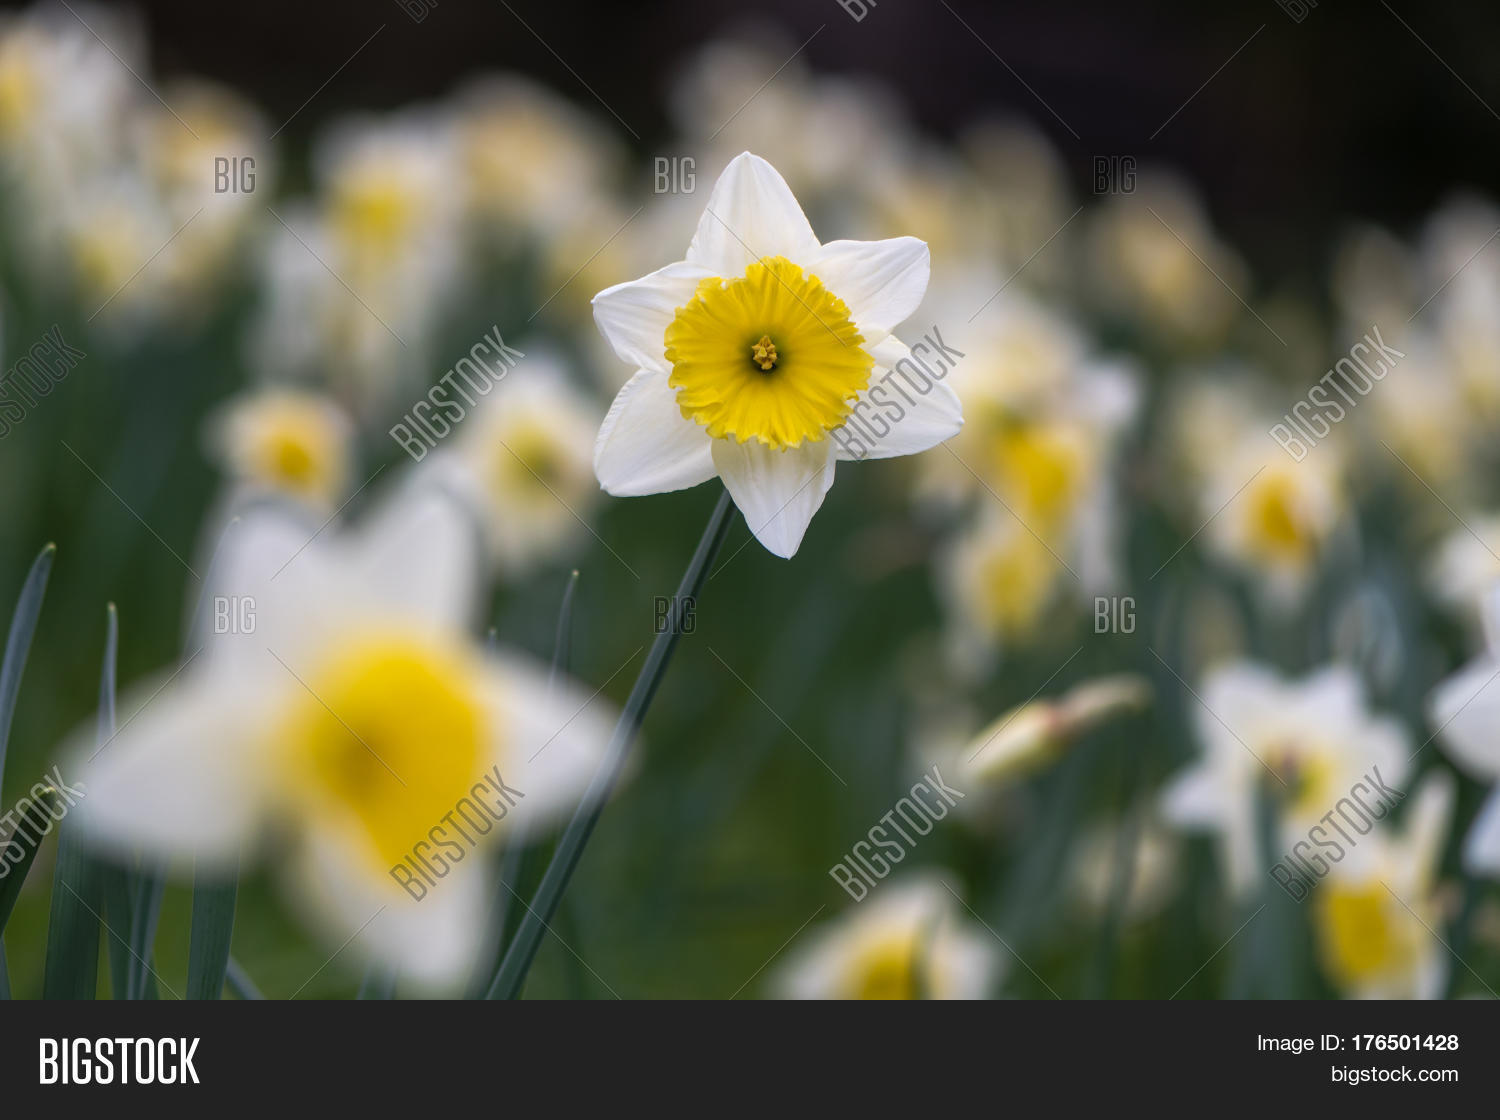 Daffodil Narcissus Ice Image Photo Free Trial Bigstock